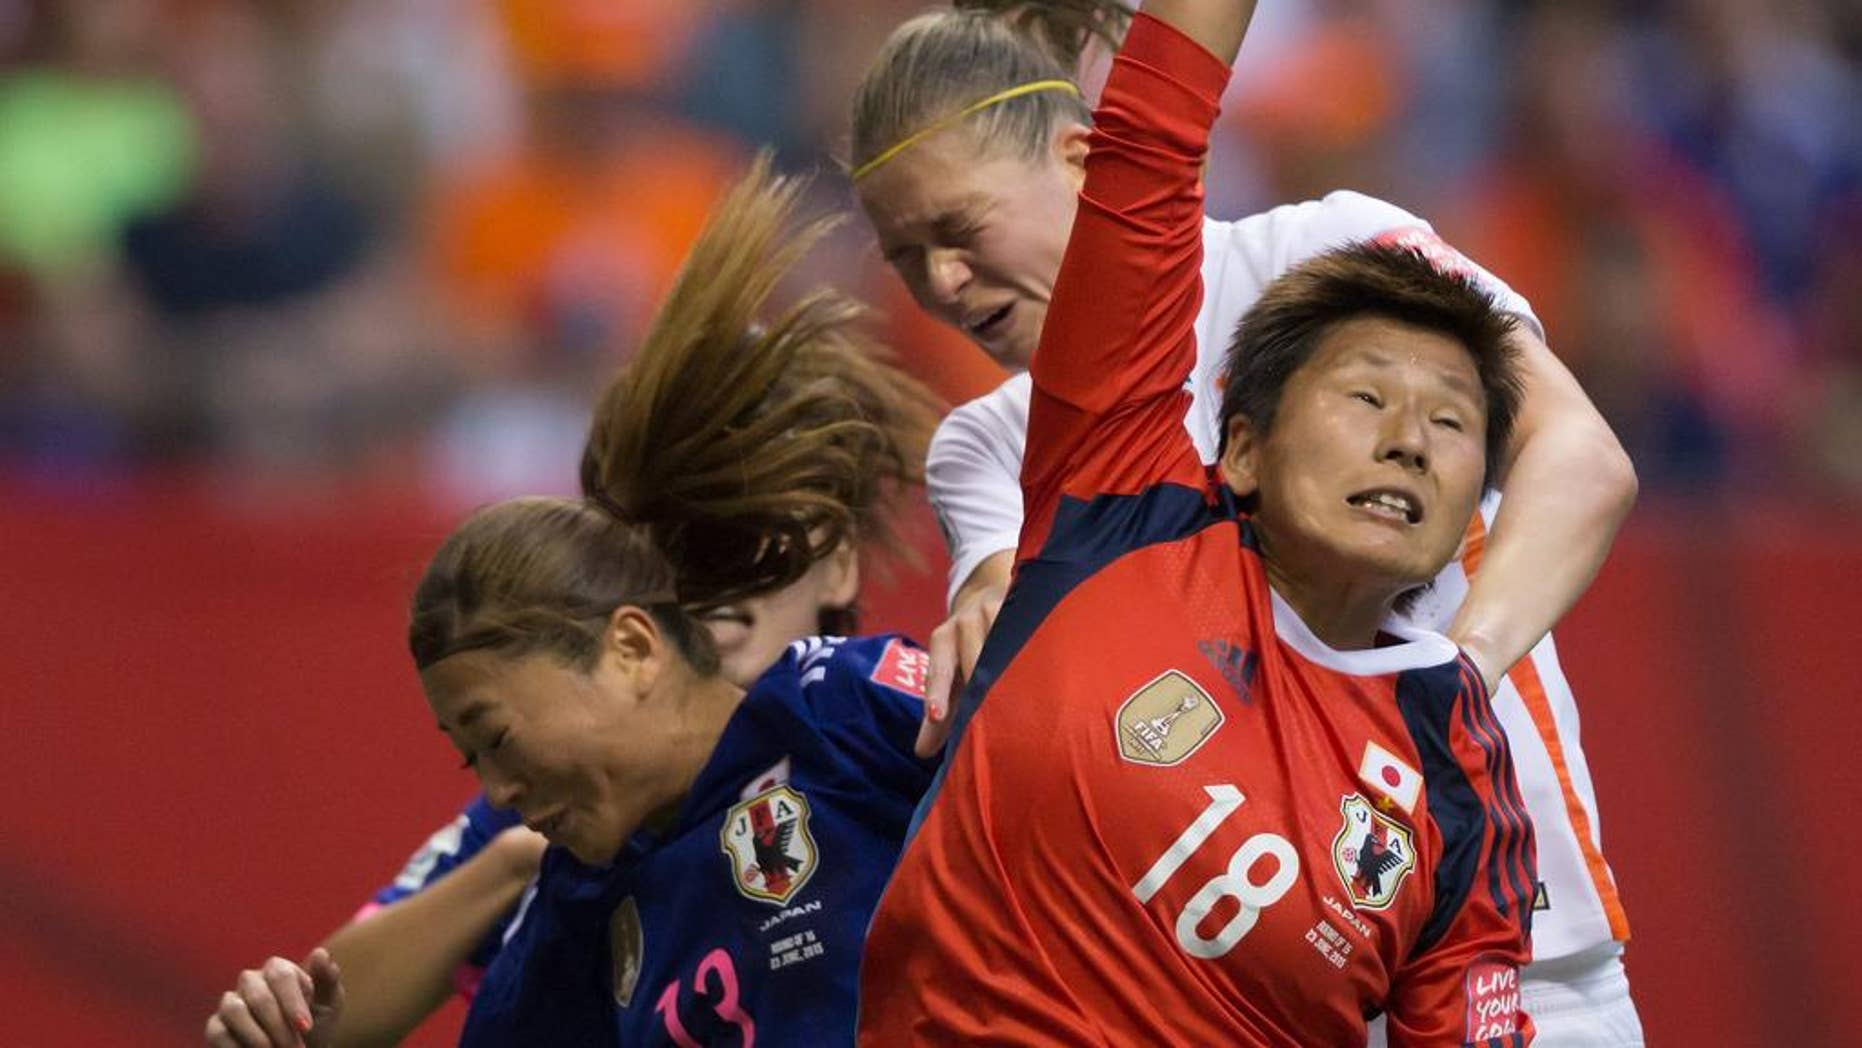 Netherlands' Anouk Dekker, back right, gets her head on the ball but fails to score as Japan goalkeeper Ayumi Kaihori (18) reaches for the ball and Rumi Utsugi (13) defends during the second half of a round of 16 soccer match at the FIFA Women's World Cup, Tuesday, June 23, 2015, in Vancouver, British Columbia, Canada. (Darryl Dyck/The Canadian Press via AP)